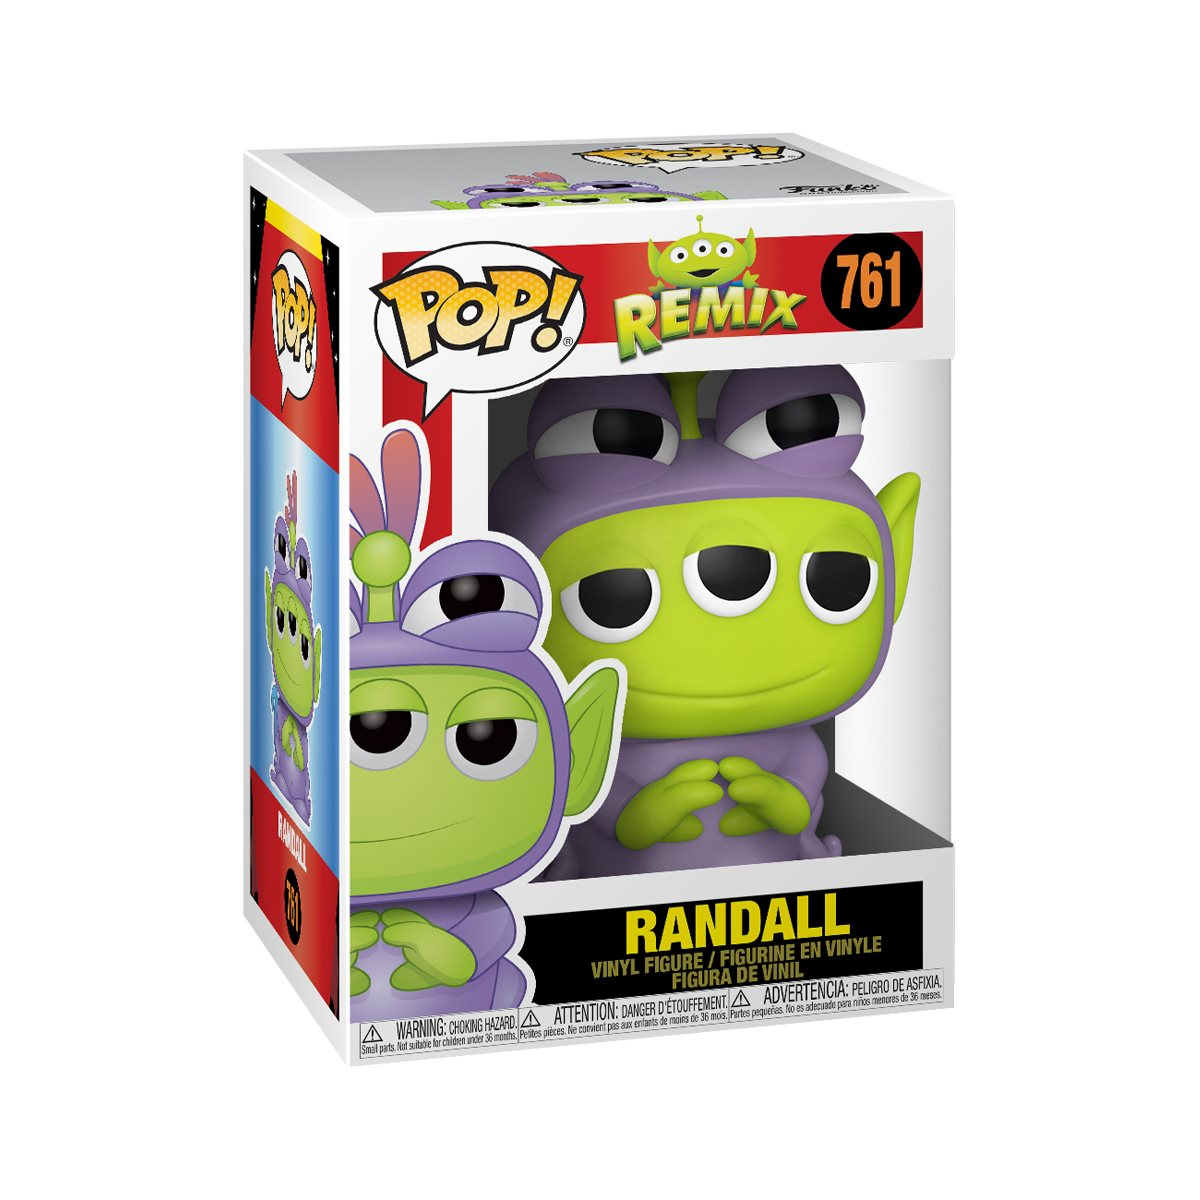 Funko Pop! Disney: Pixar Alien Remix - Alien as Randall #761 - Funko